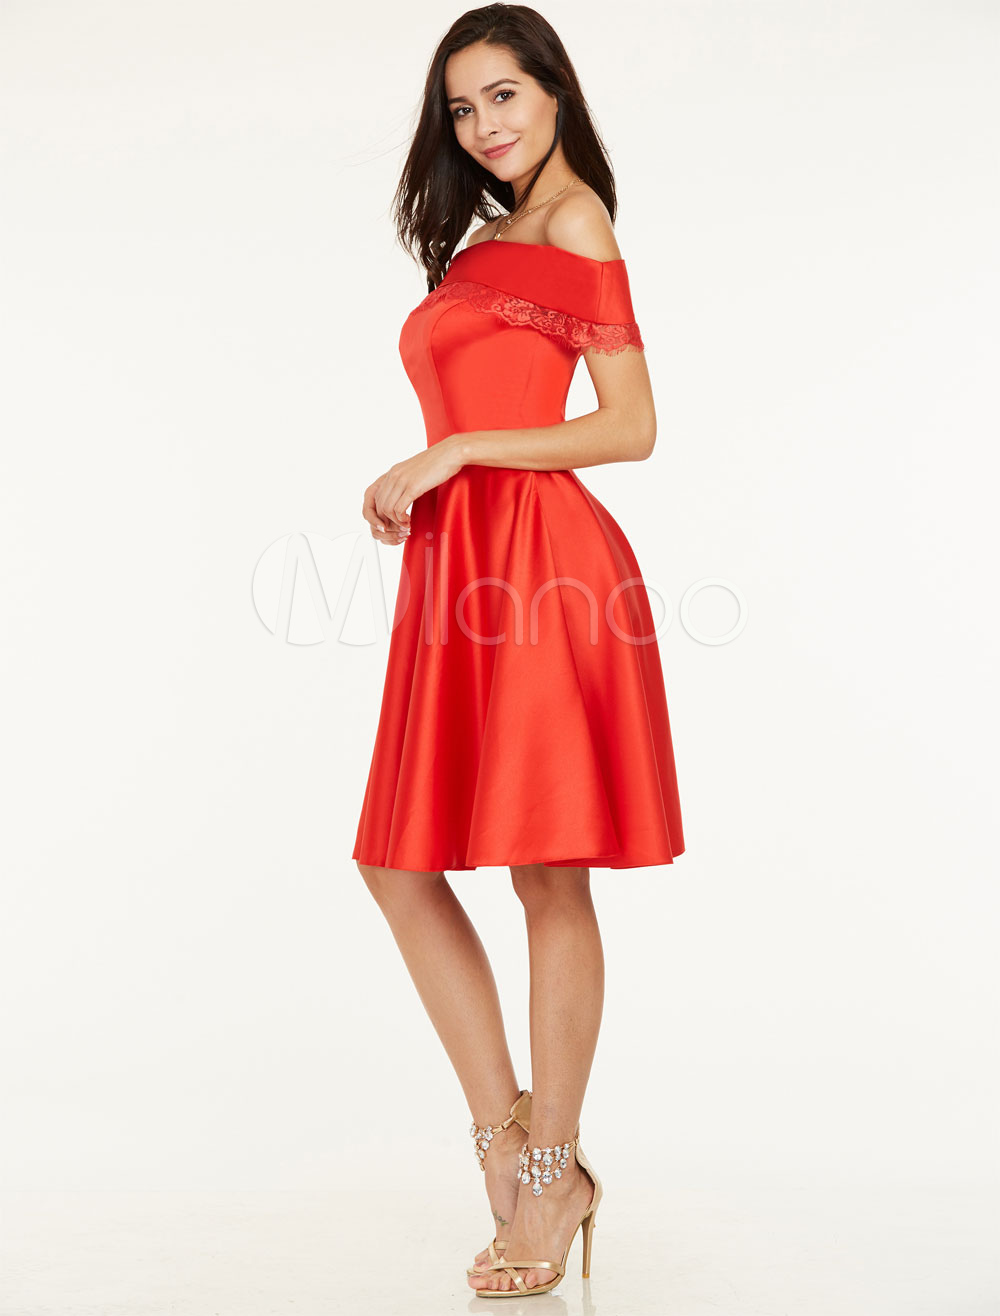 Buy Short Prom Dresses Red Off The Shoulder Cocktail Dress Lace Trim Knee Length Graduation Dresses for $74.79 in Milanoo store